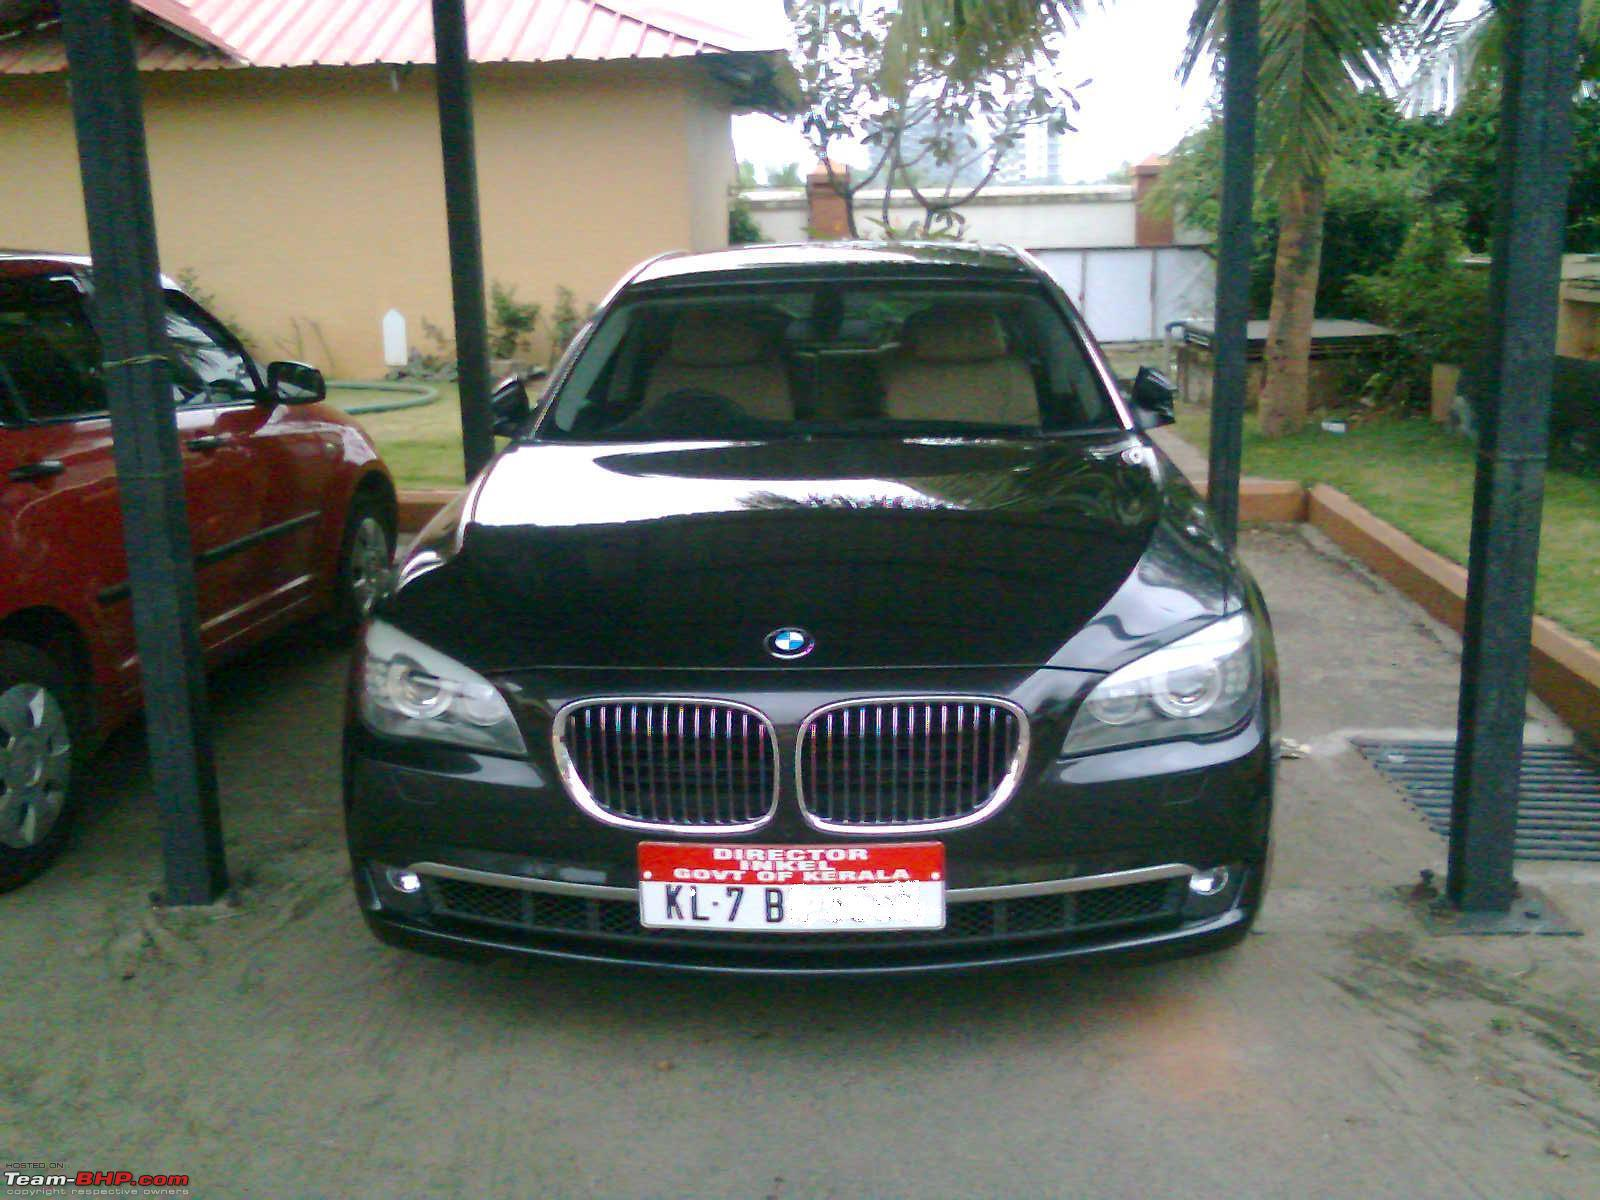 Olx Philippines Cars >> Kerala Car Pictures to Pin on Pinterest - ThePinsta